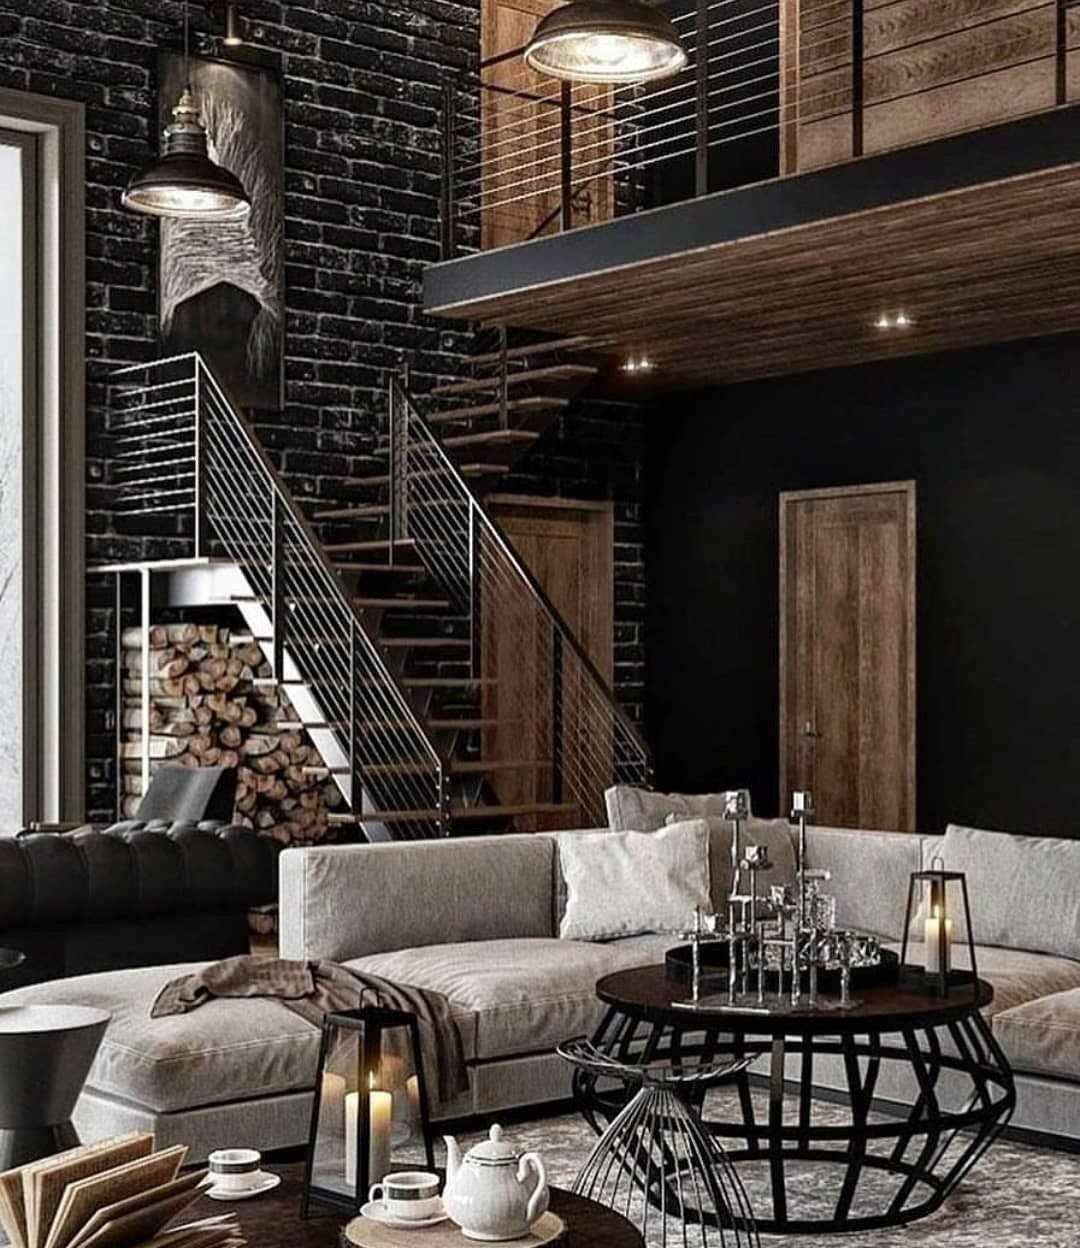 innovative industrial interior design bedroom ideas | #houseofvdm #love | Industrial chic decor, Industrial ...